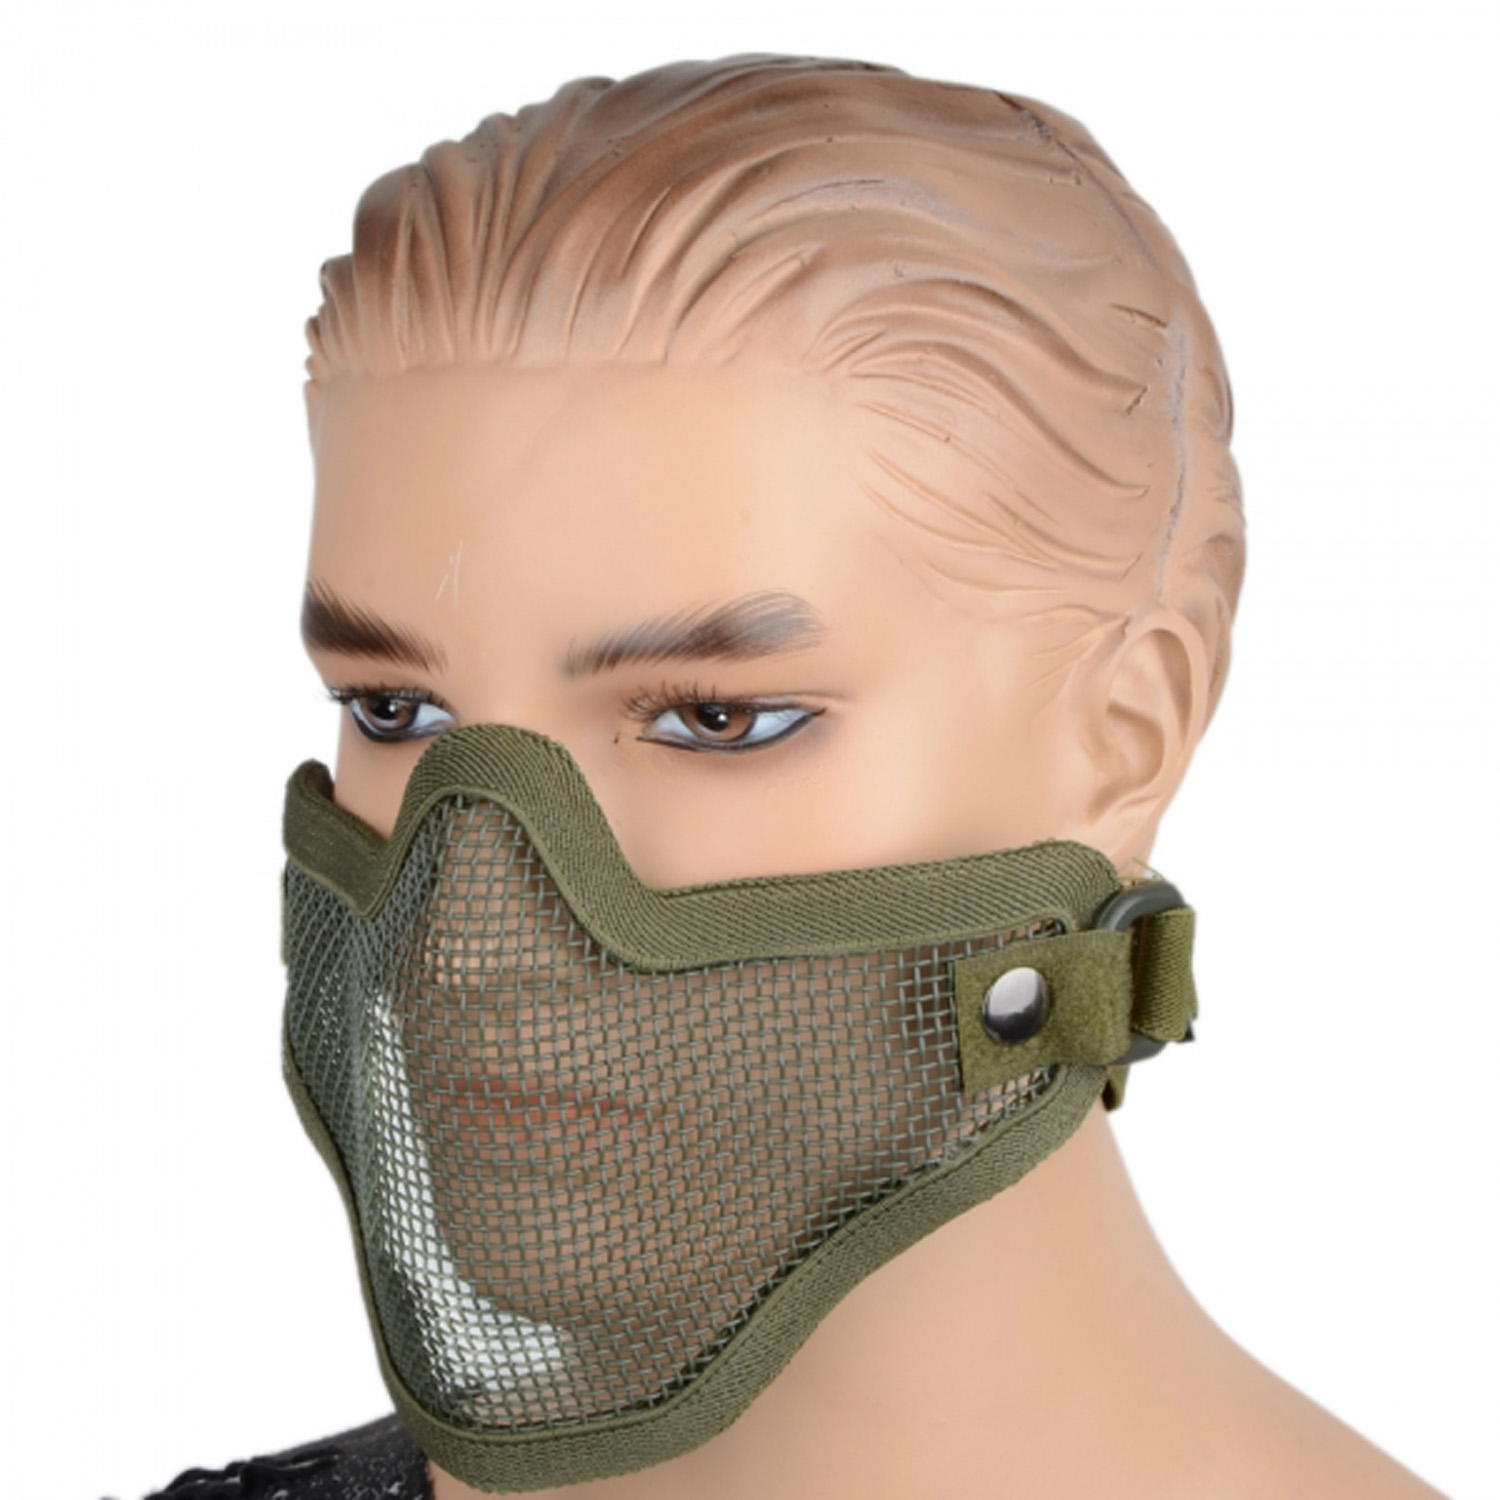 Army Green Half Face Net Mesh Protection Mask Elastic Strap Velcro Outdoor Activity War Game Military Use - Top Electronics store